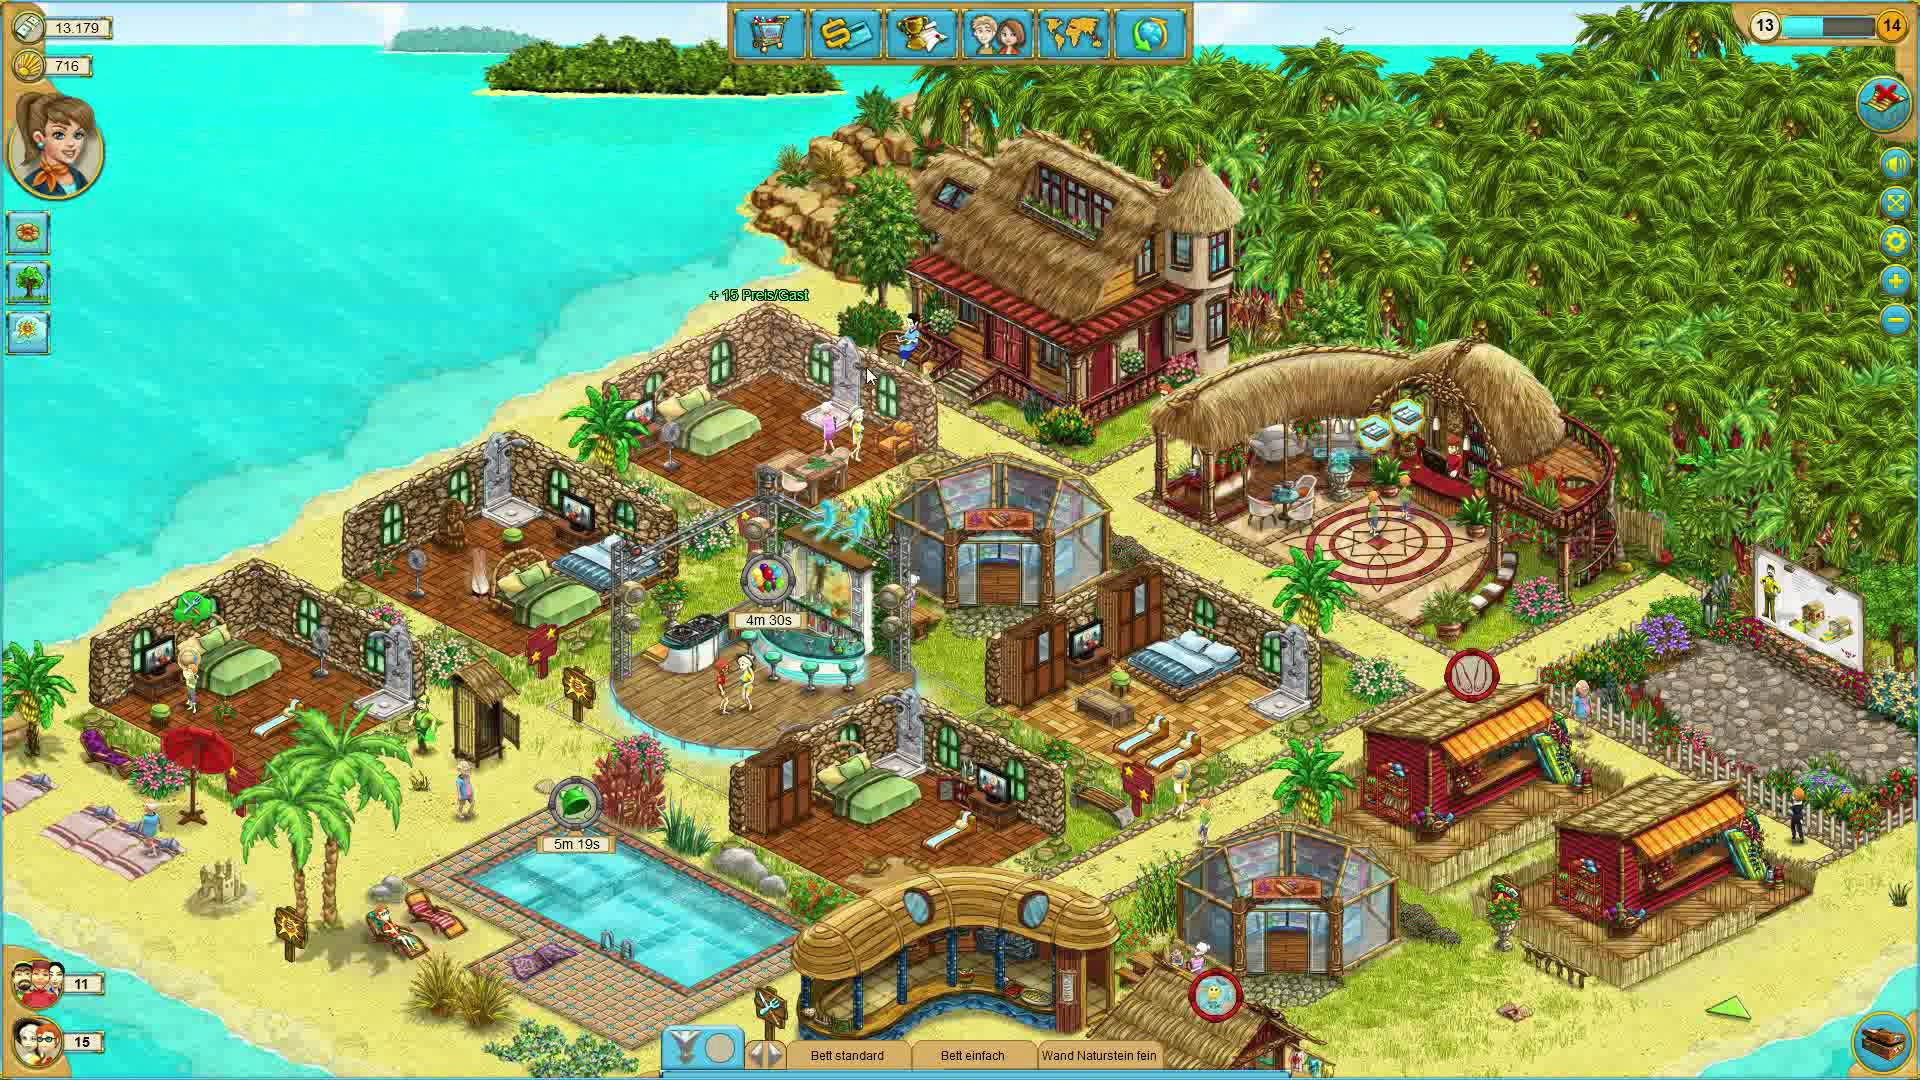 Beach resort in an island with swimming pool, cottages, hotels and other buildings.